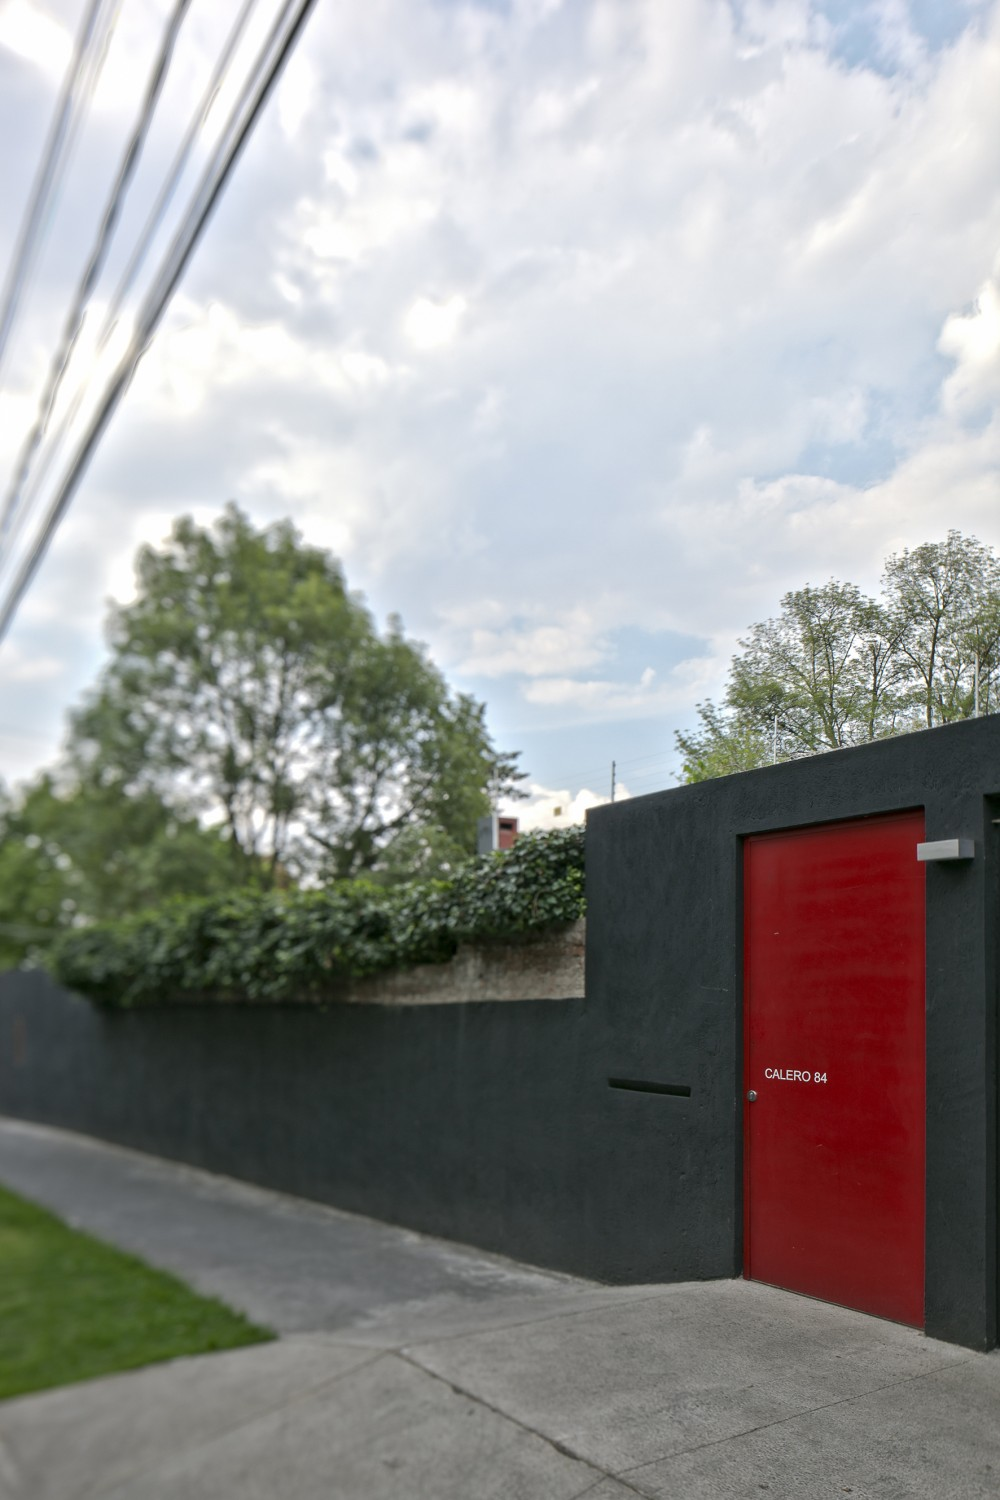 Beautiful Touch Of Decor In Modern Residence : Wonderful Exterior Calero House With Grey Wall Decoration And Red Door